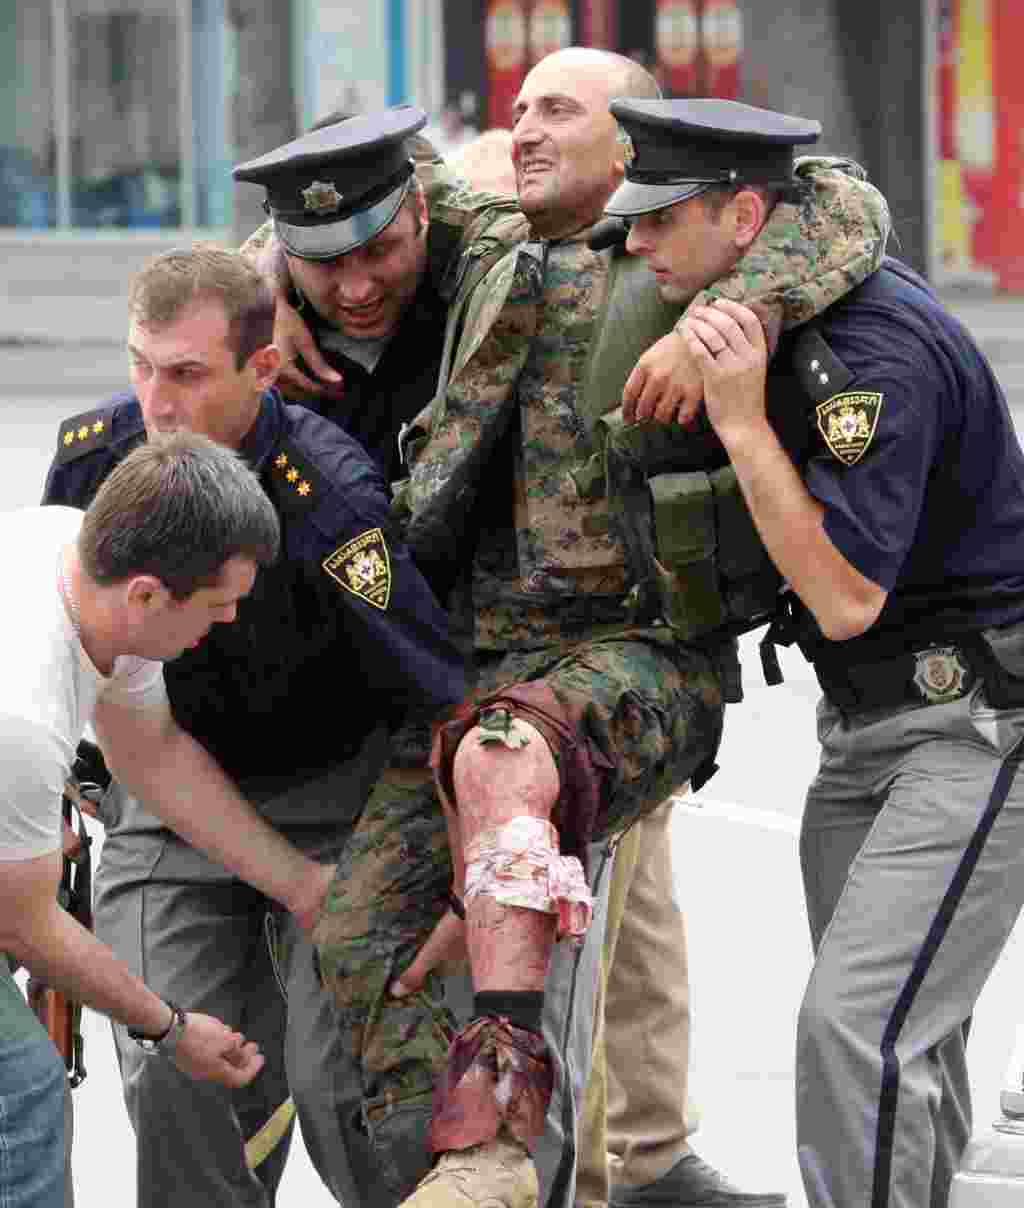 Police officers help a Georgian soldier who was wounded in fighting with South Ossetian separatists in the town of Gori.